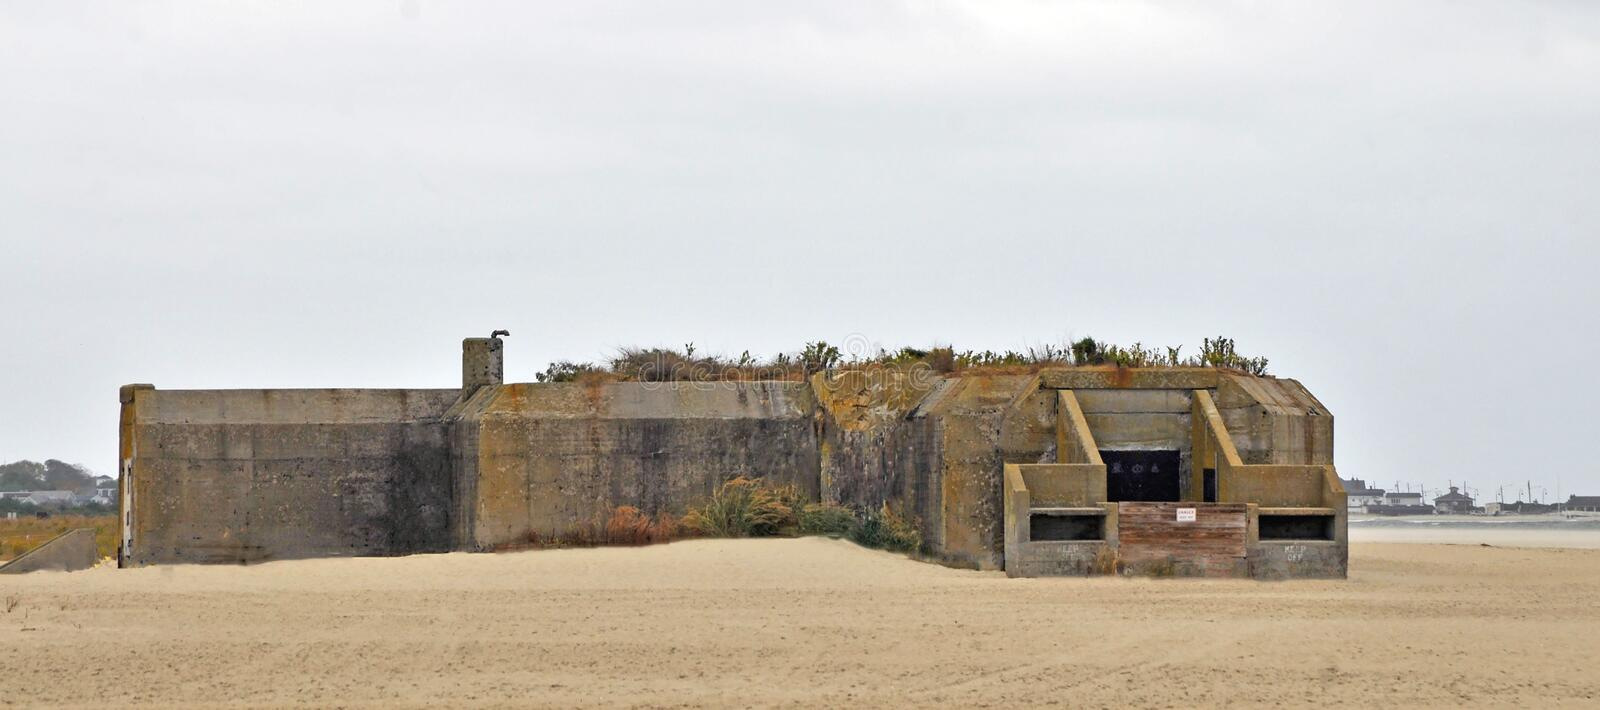 Abandoned Giant On The Beach Cape May, New Jersey. Prior to WWII, the United States strengthened its coastal defenses. One of the forts is Battery 223. Sitting royalty free stock photo